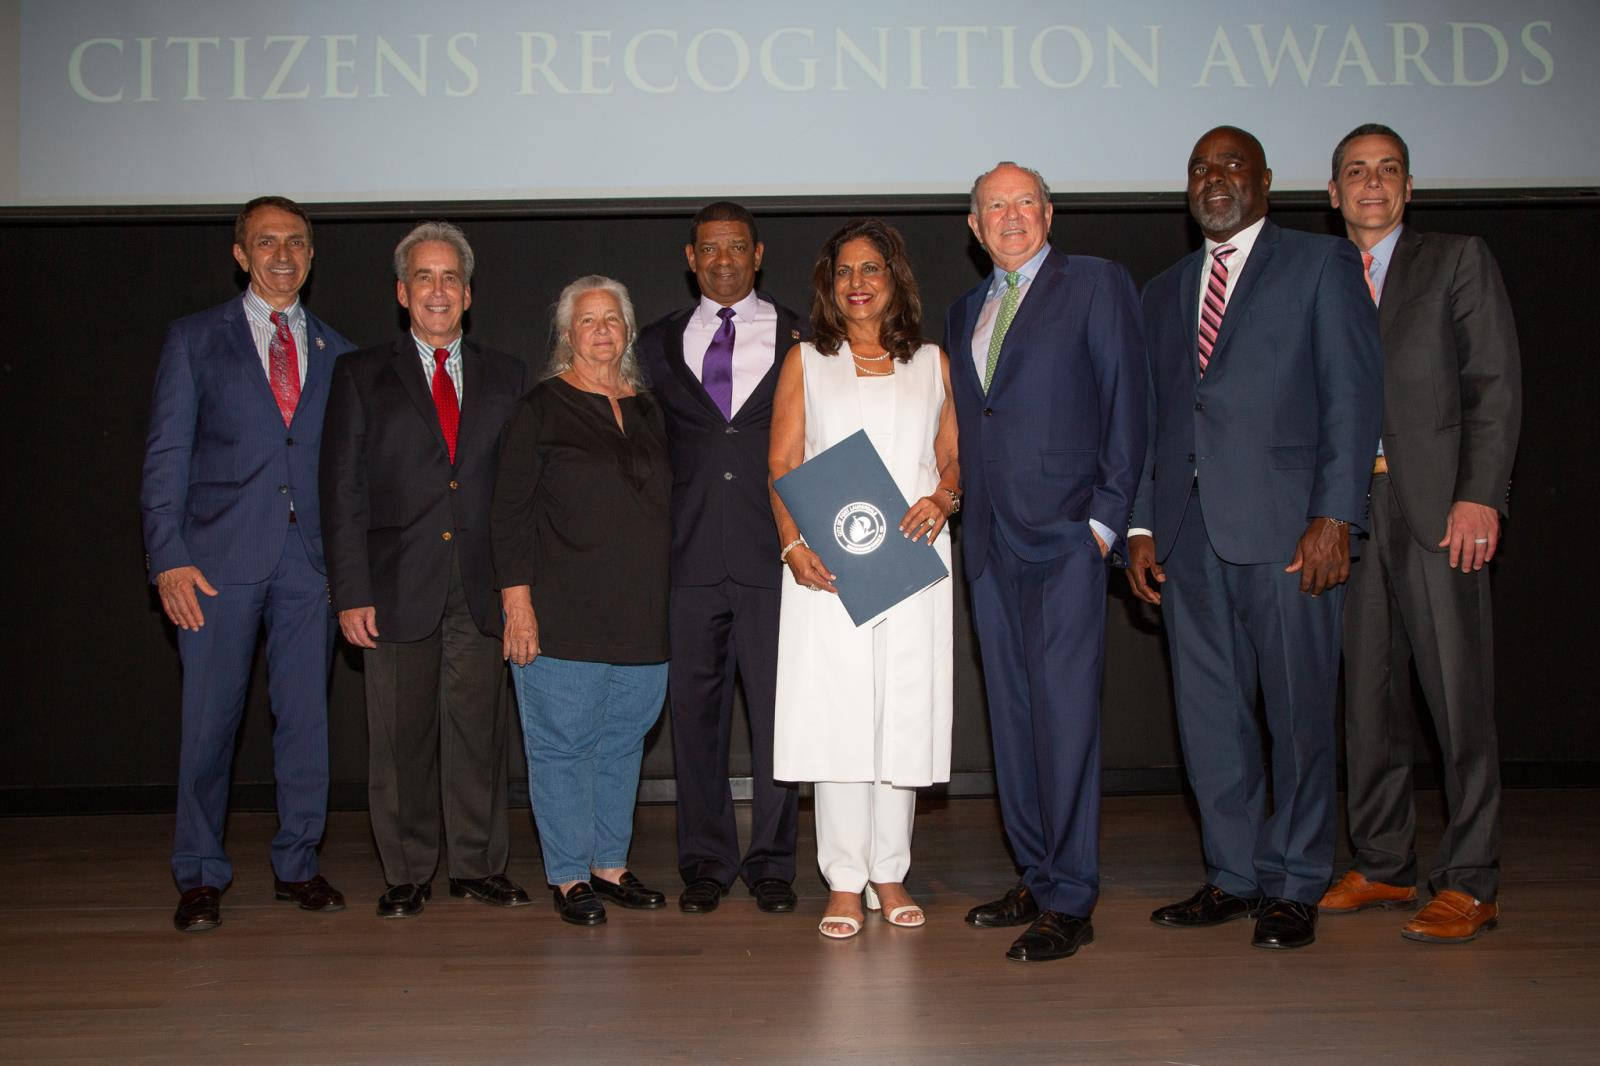 Fort Lauderdale City Commissioners with the 2018 Citizens Recognition Awards Honorees